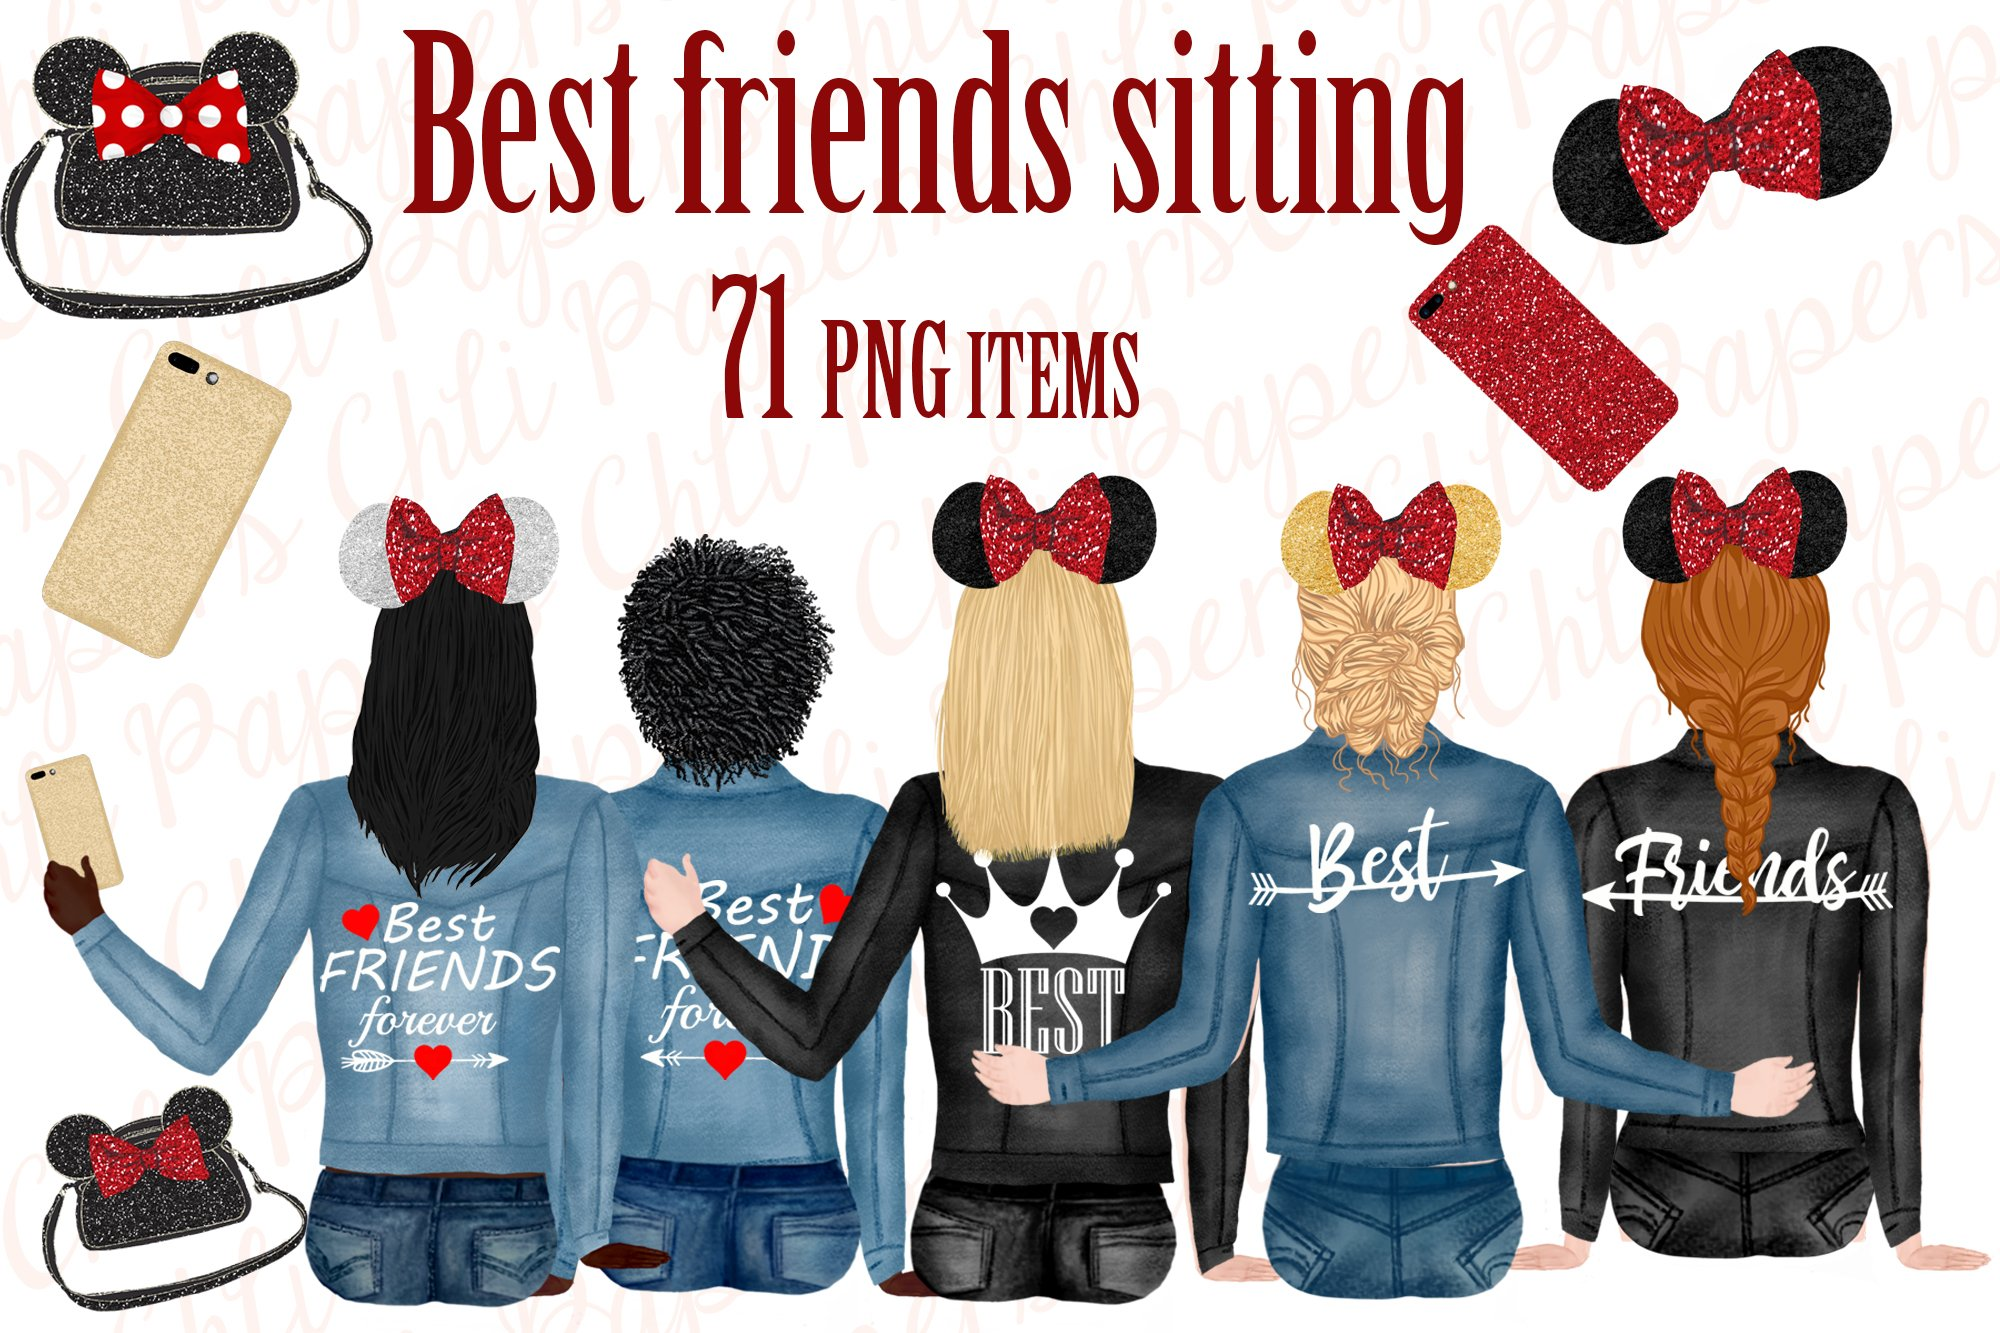 Best Friends Are Like Stars Pictures, Photos, and Images